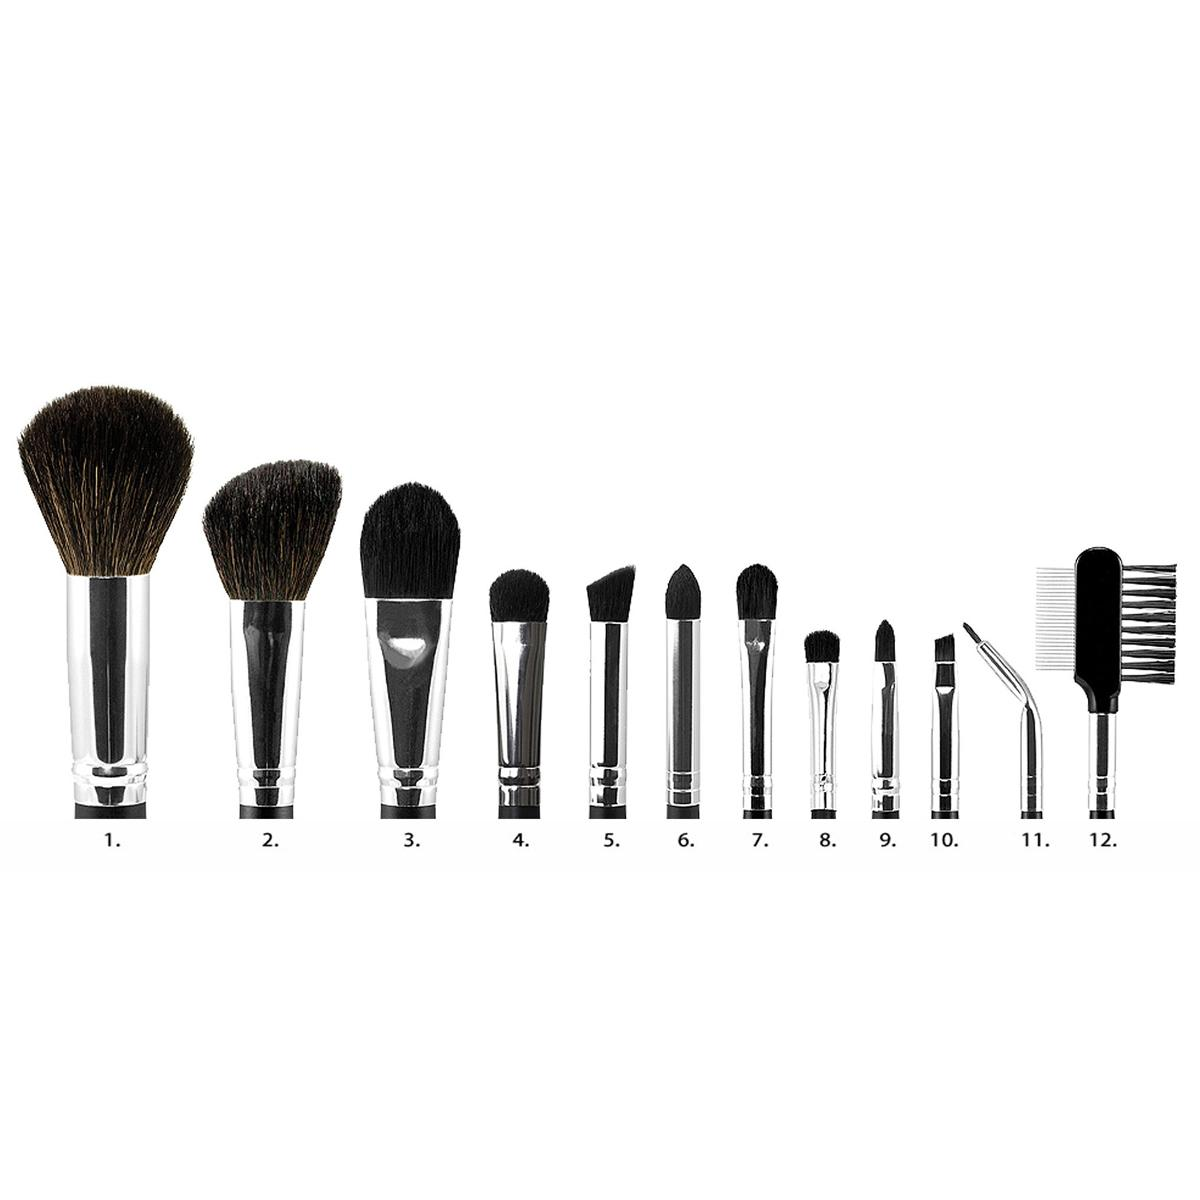 coastal scents brushes. 12 piece brush set brushes reference chart coastal scents